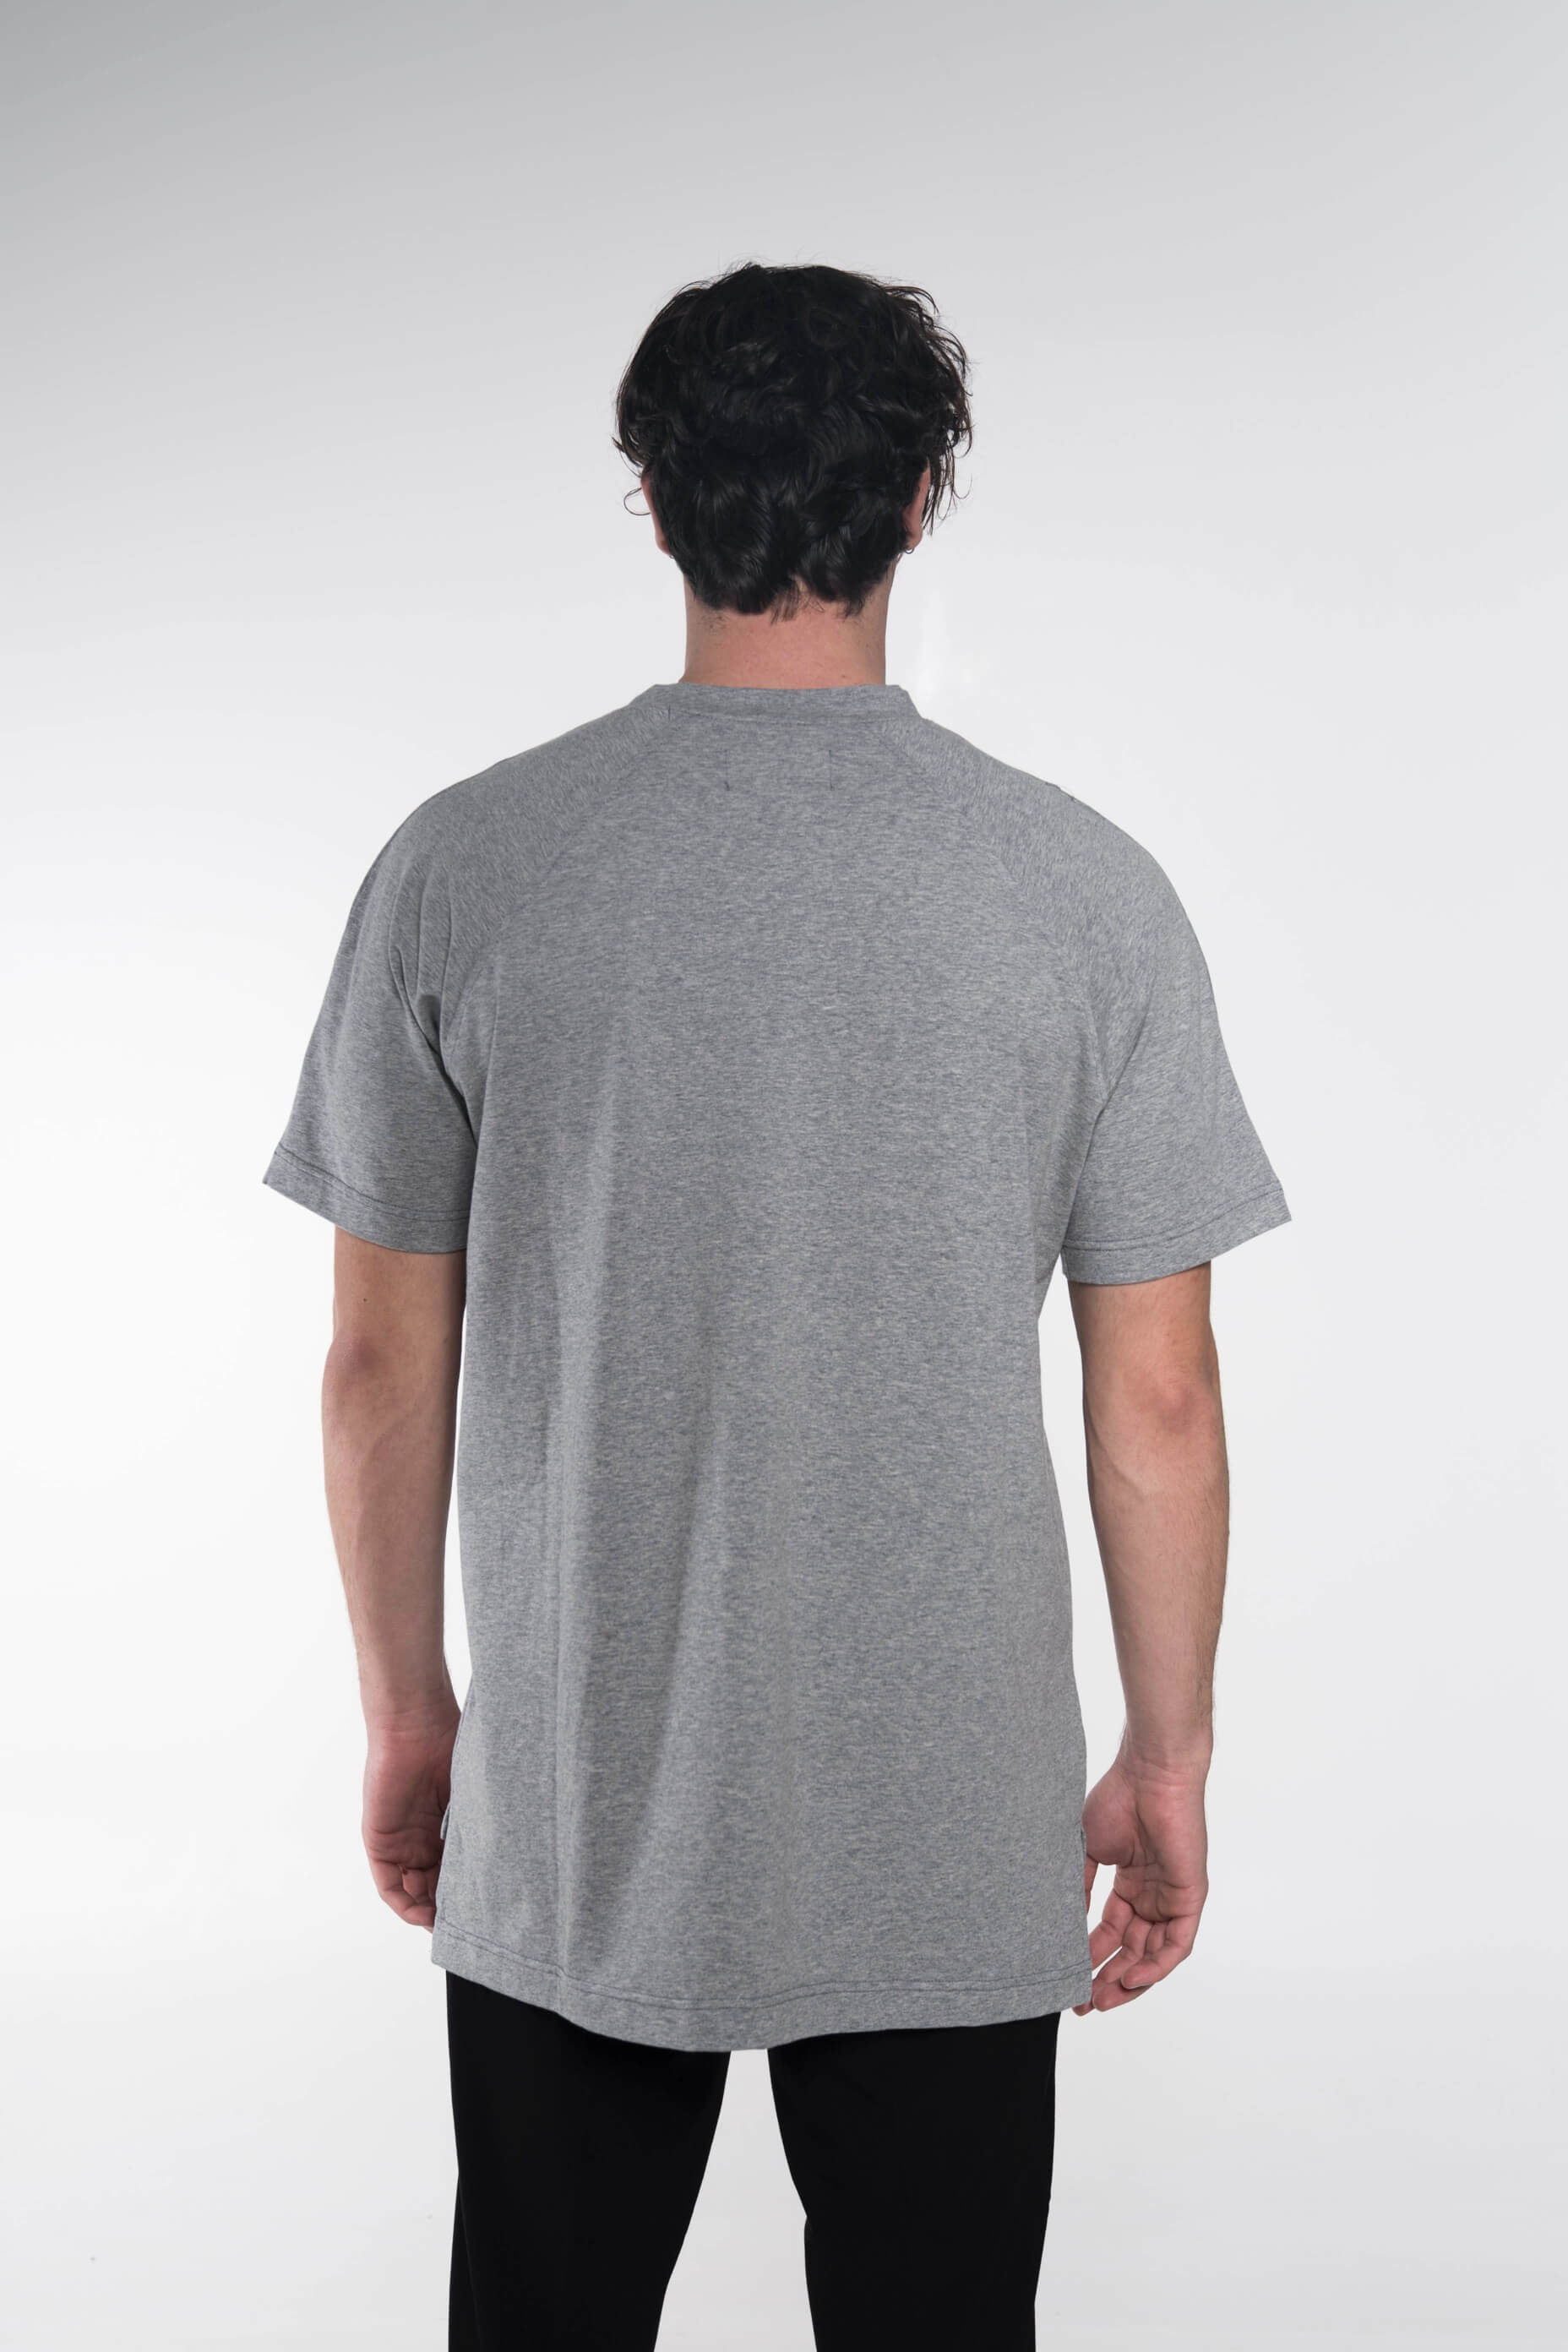 Collar logo t-shirt grey